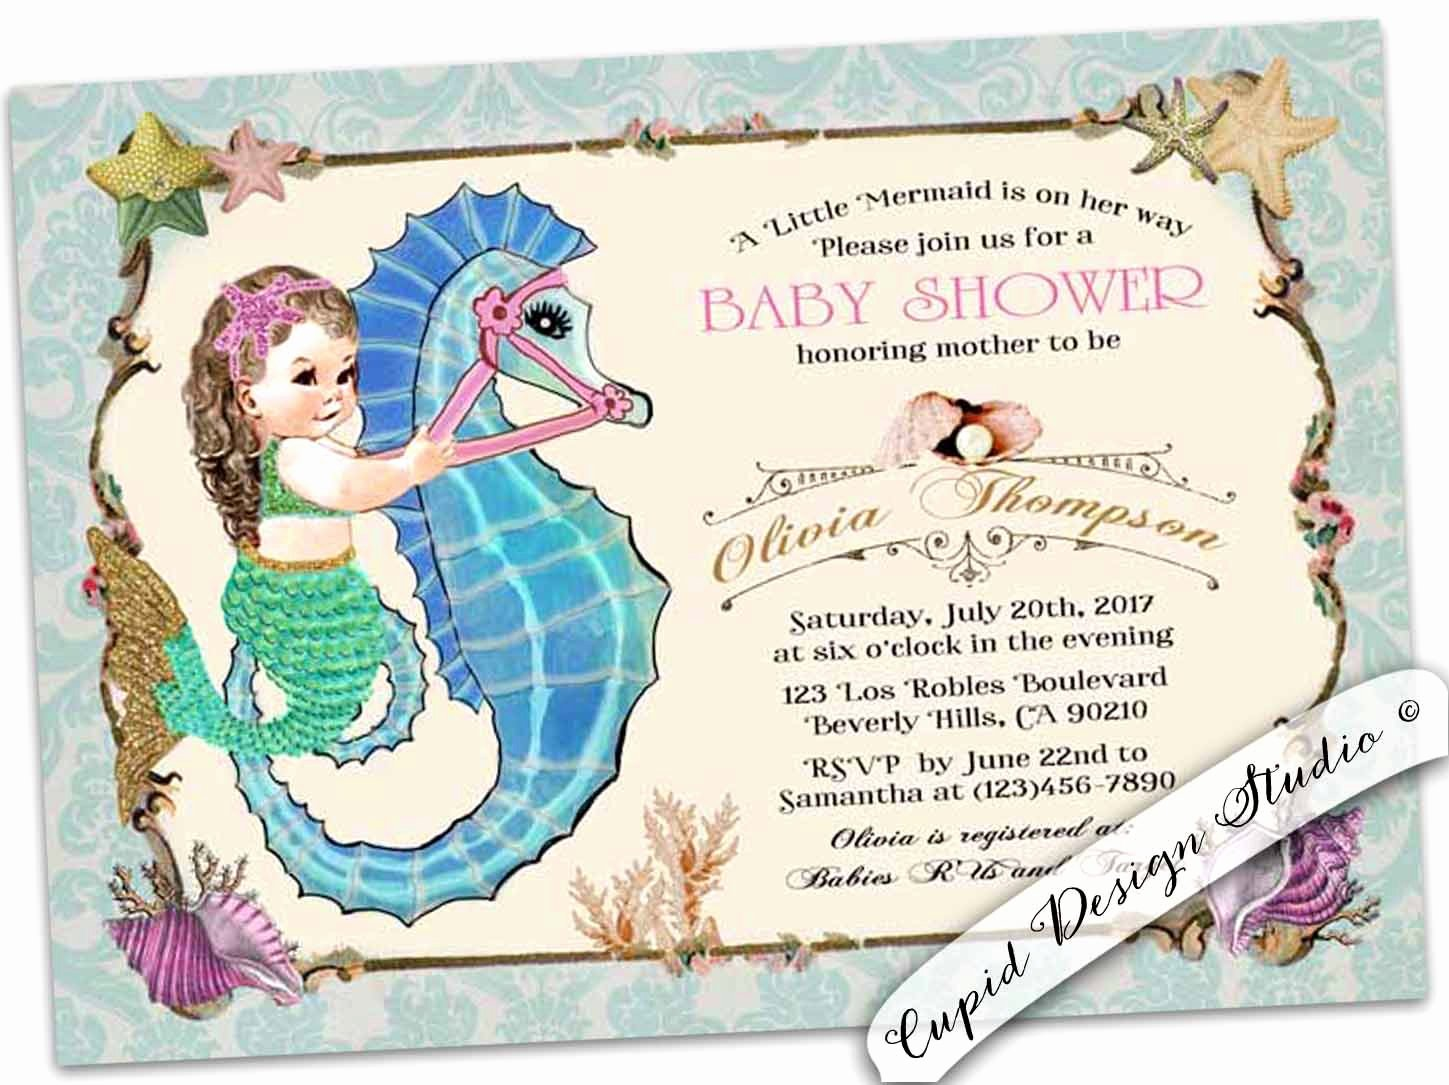 Mermaid Baby Shower Invitations Unique Mermaid Baby Shower Invitation Mermaid Girl Baby Shower